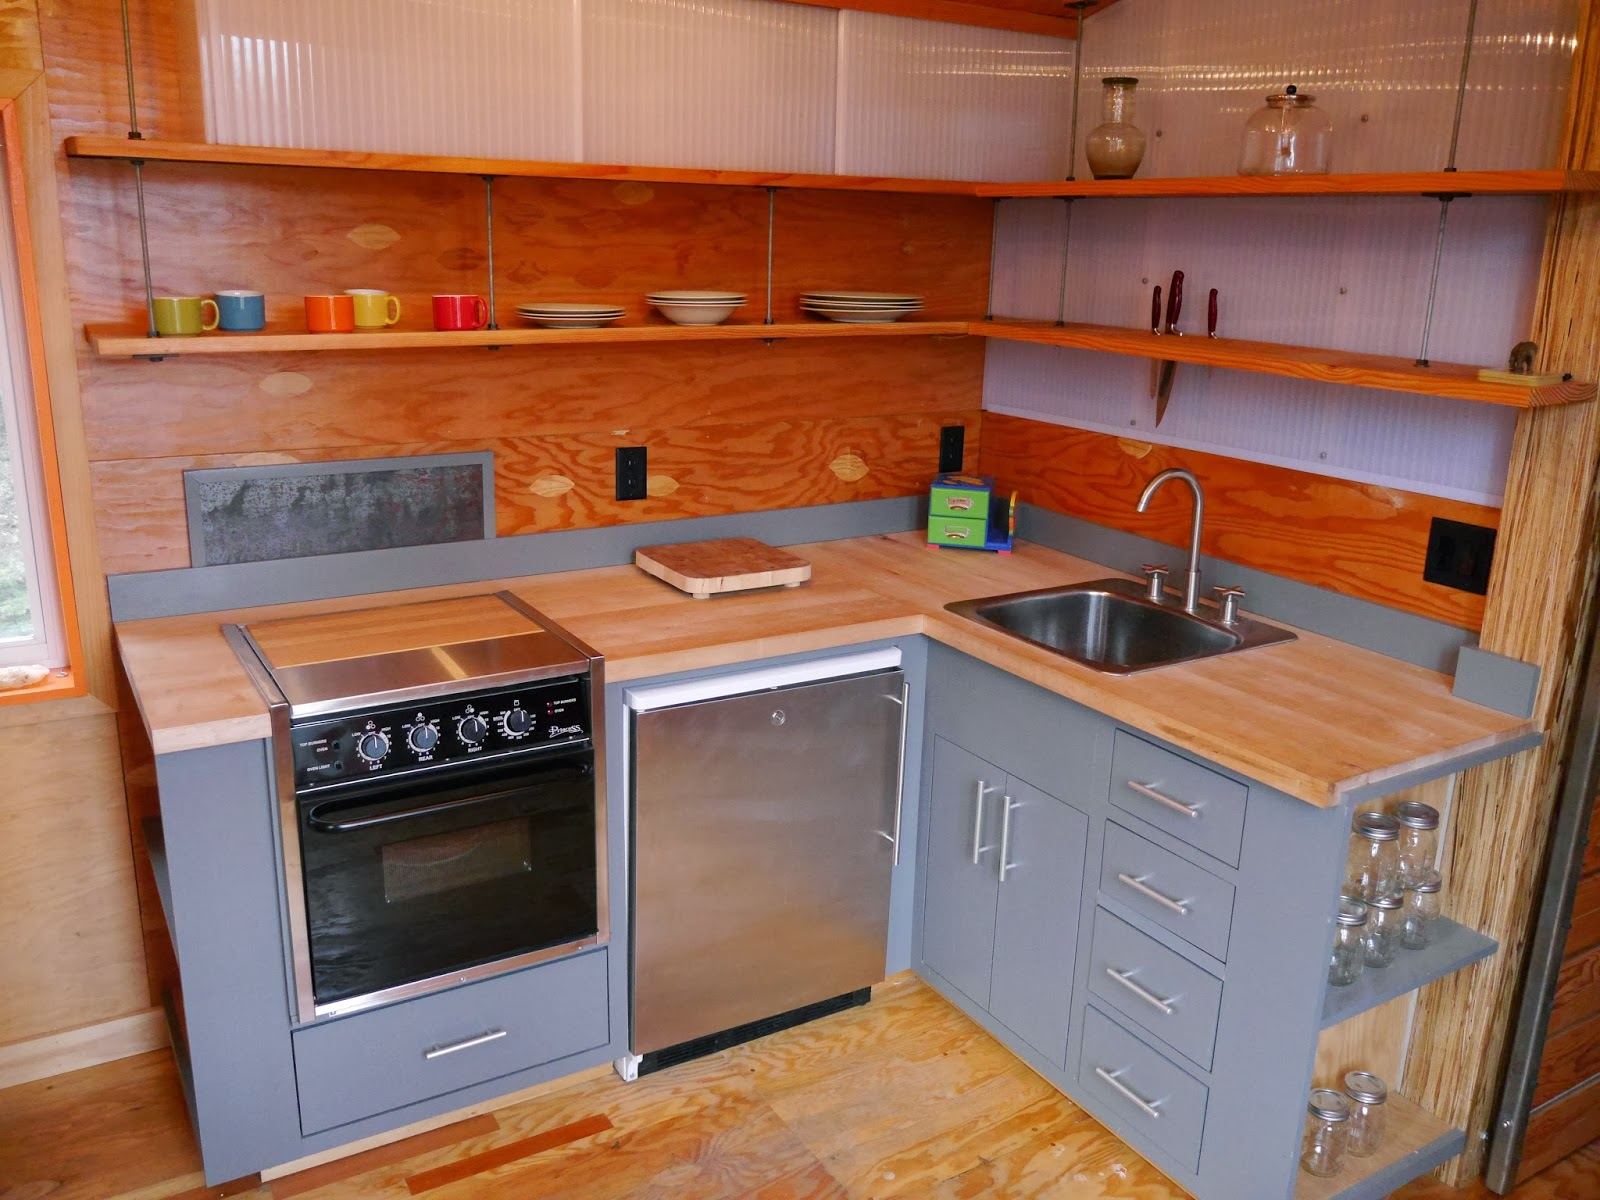 Tiny Kitchen Appliances Stores Relaxshacks A Great House Modern In Quotthe